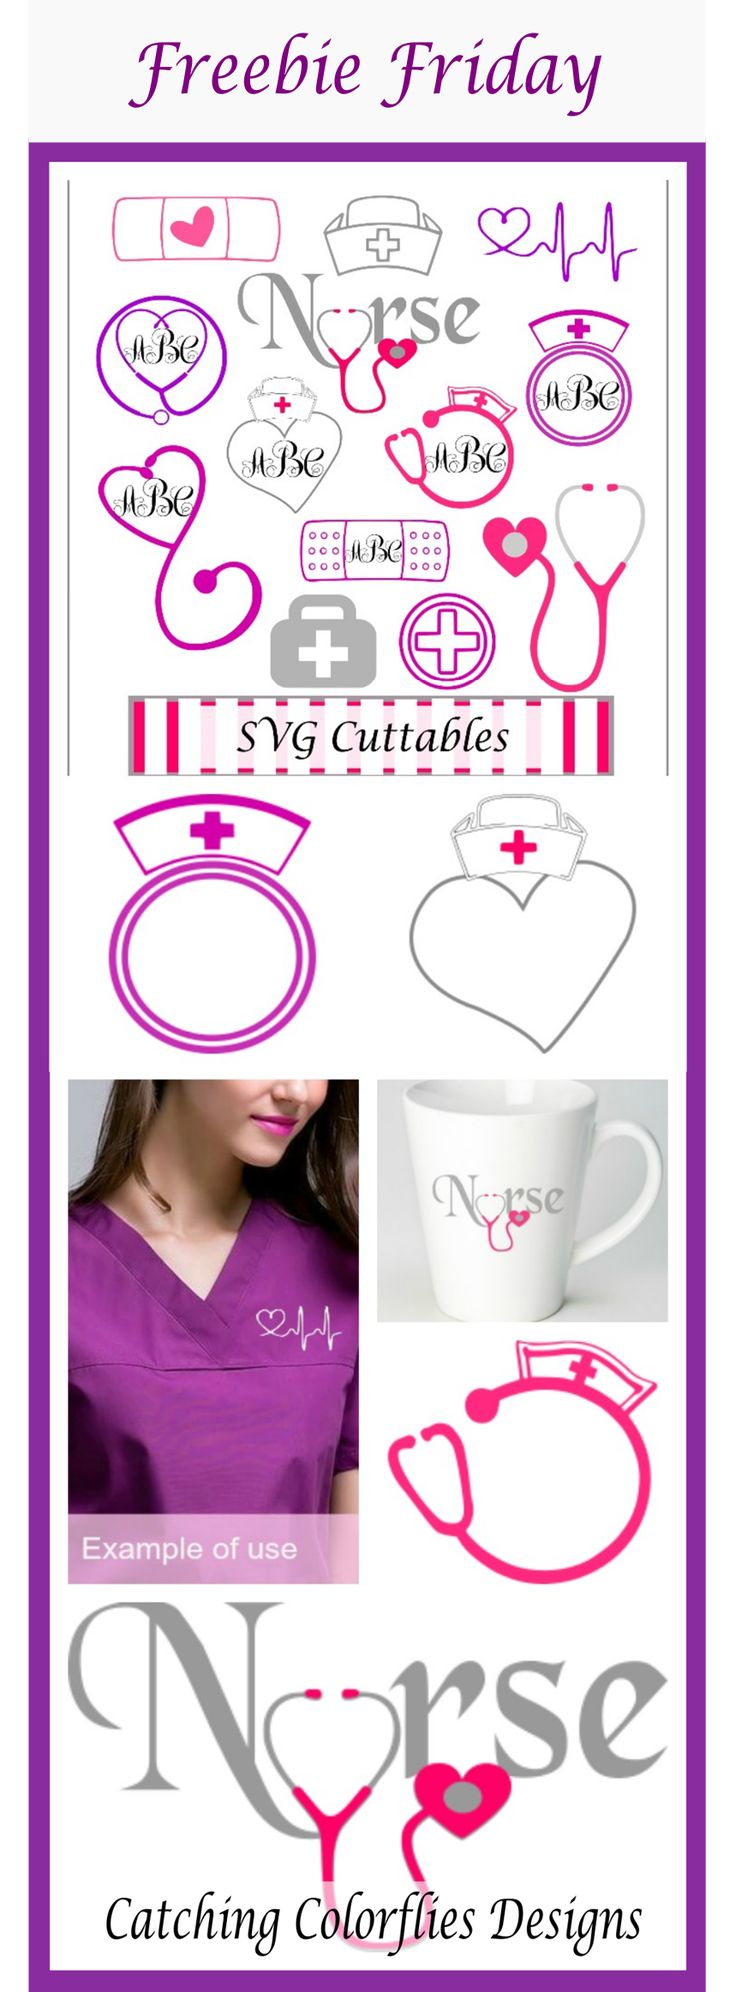 Nursing Monogram Frame SVG, DXF, EPS, PNG cut files. Free SVG files for cricut. Free SVG files for silhouette.